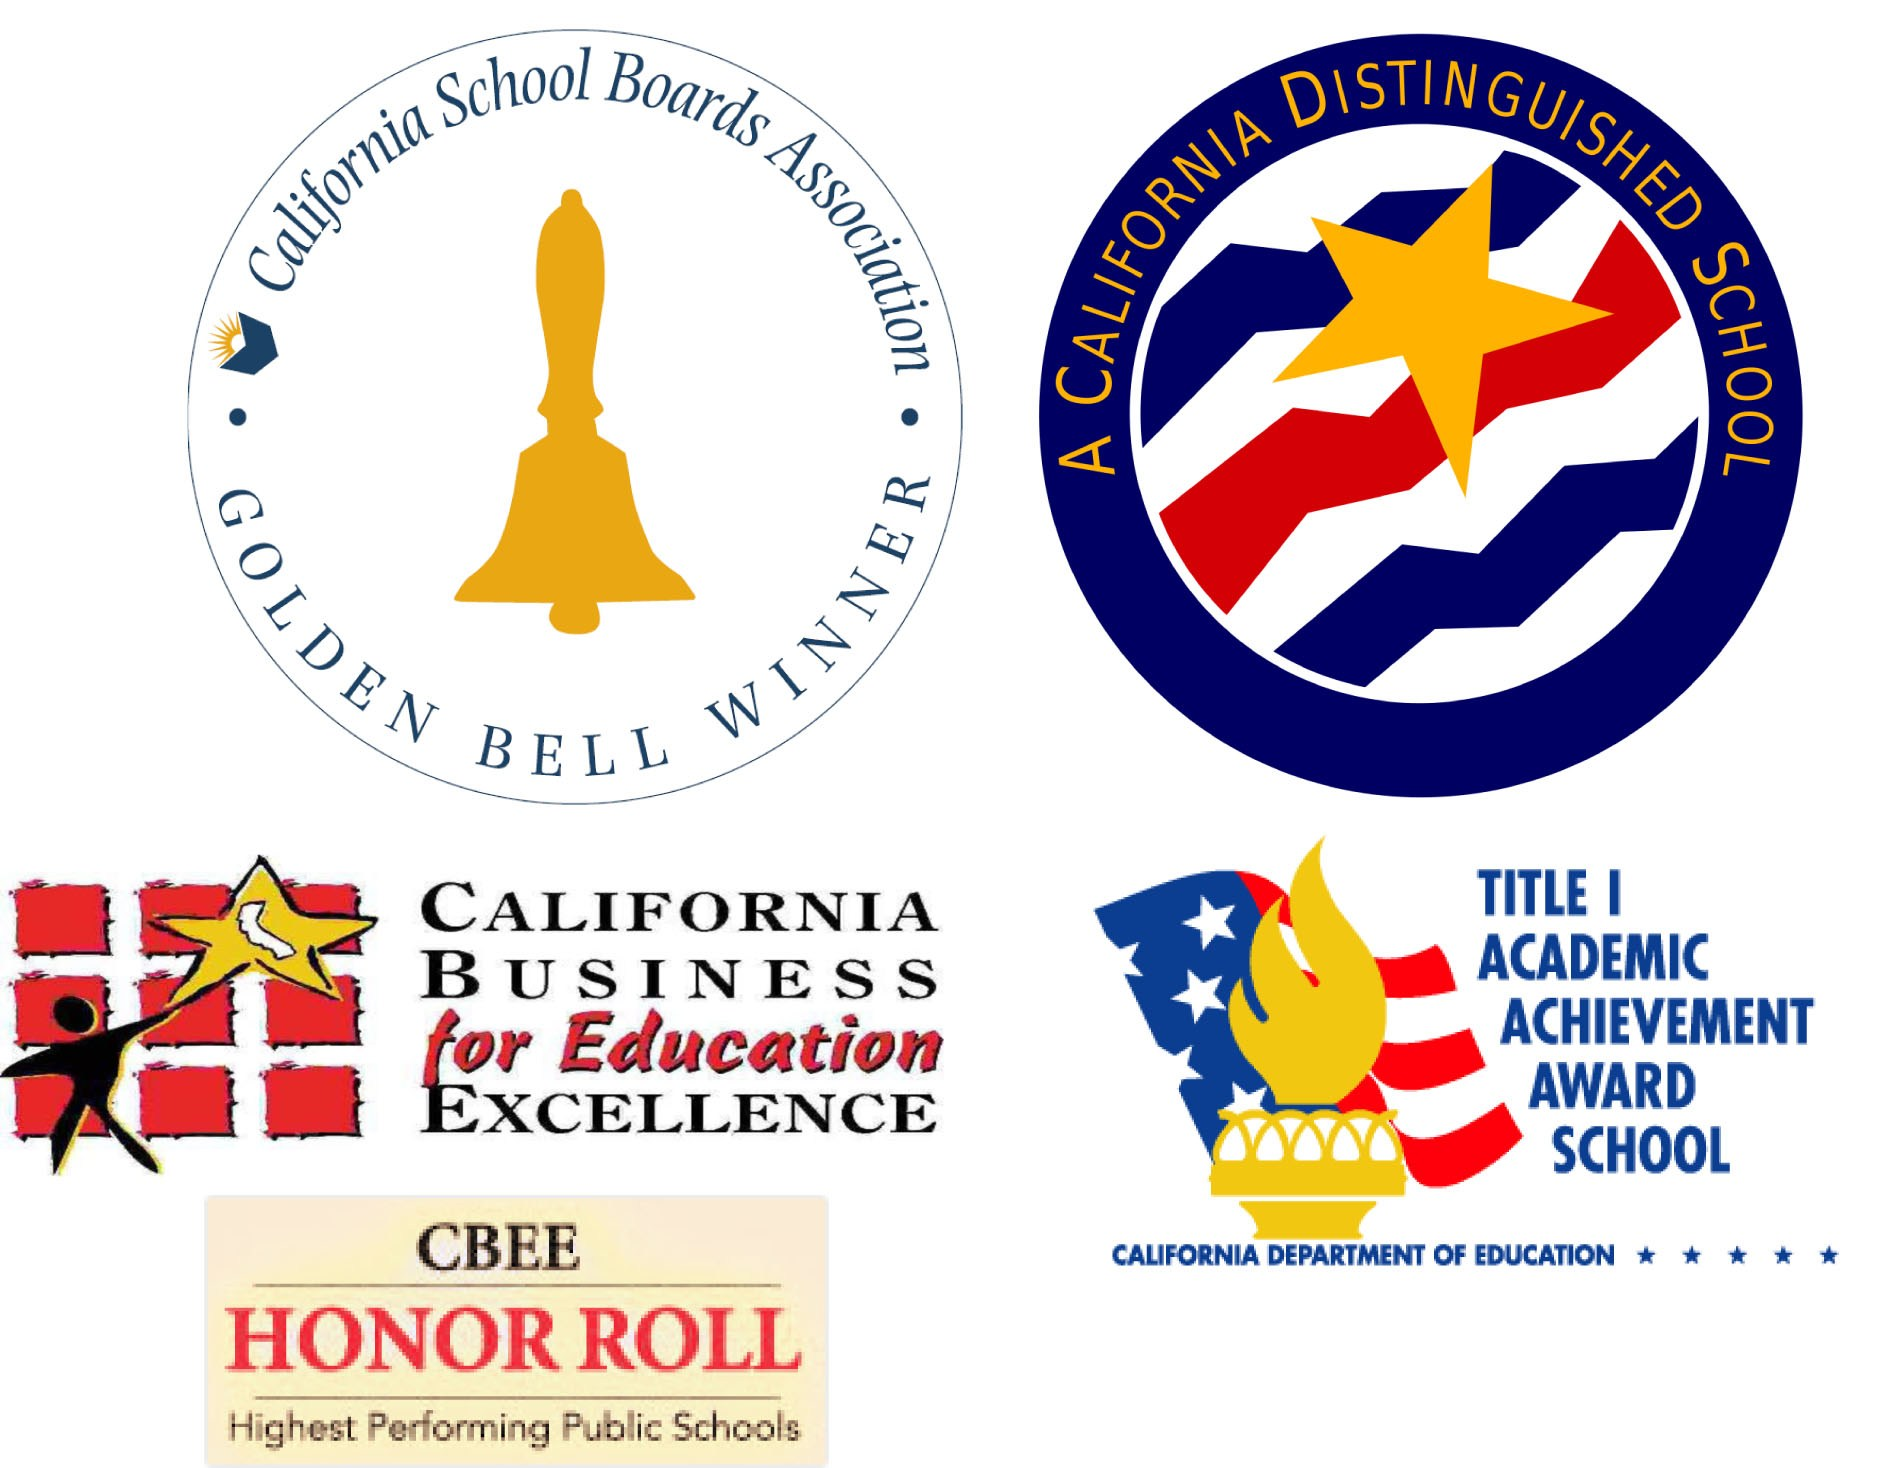 List of awards won by Ceres Elementary including Golden Bell Award and the California Distinguished School Award.